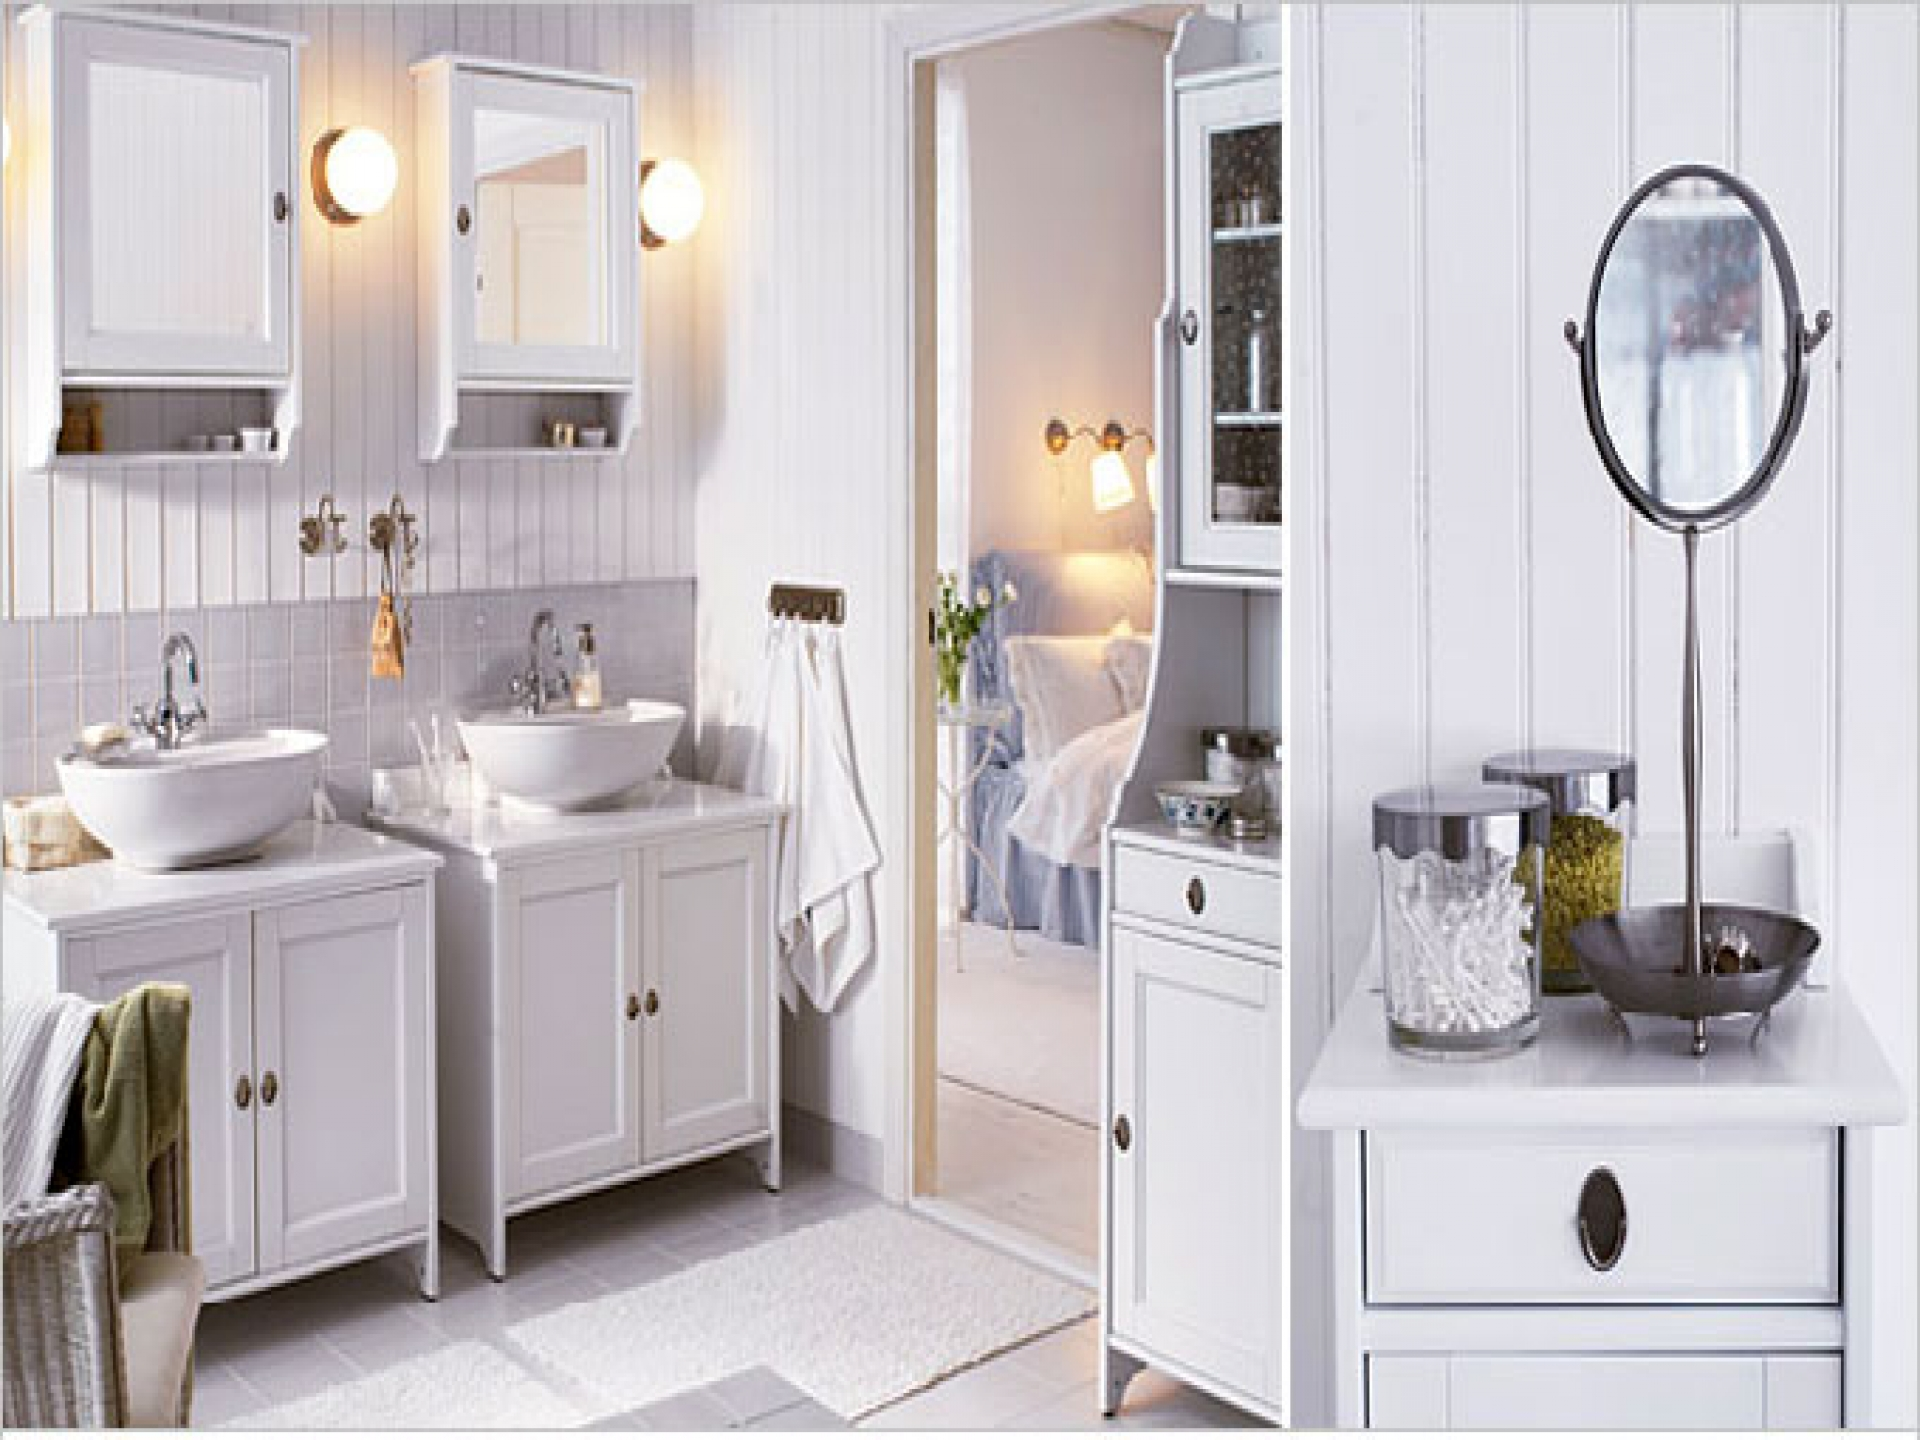 ikea cabinet design ikea bath cabinet invades every bathroom with dignity 504